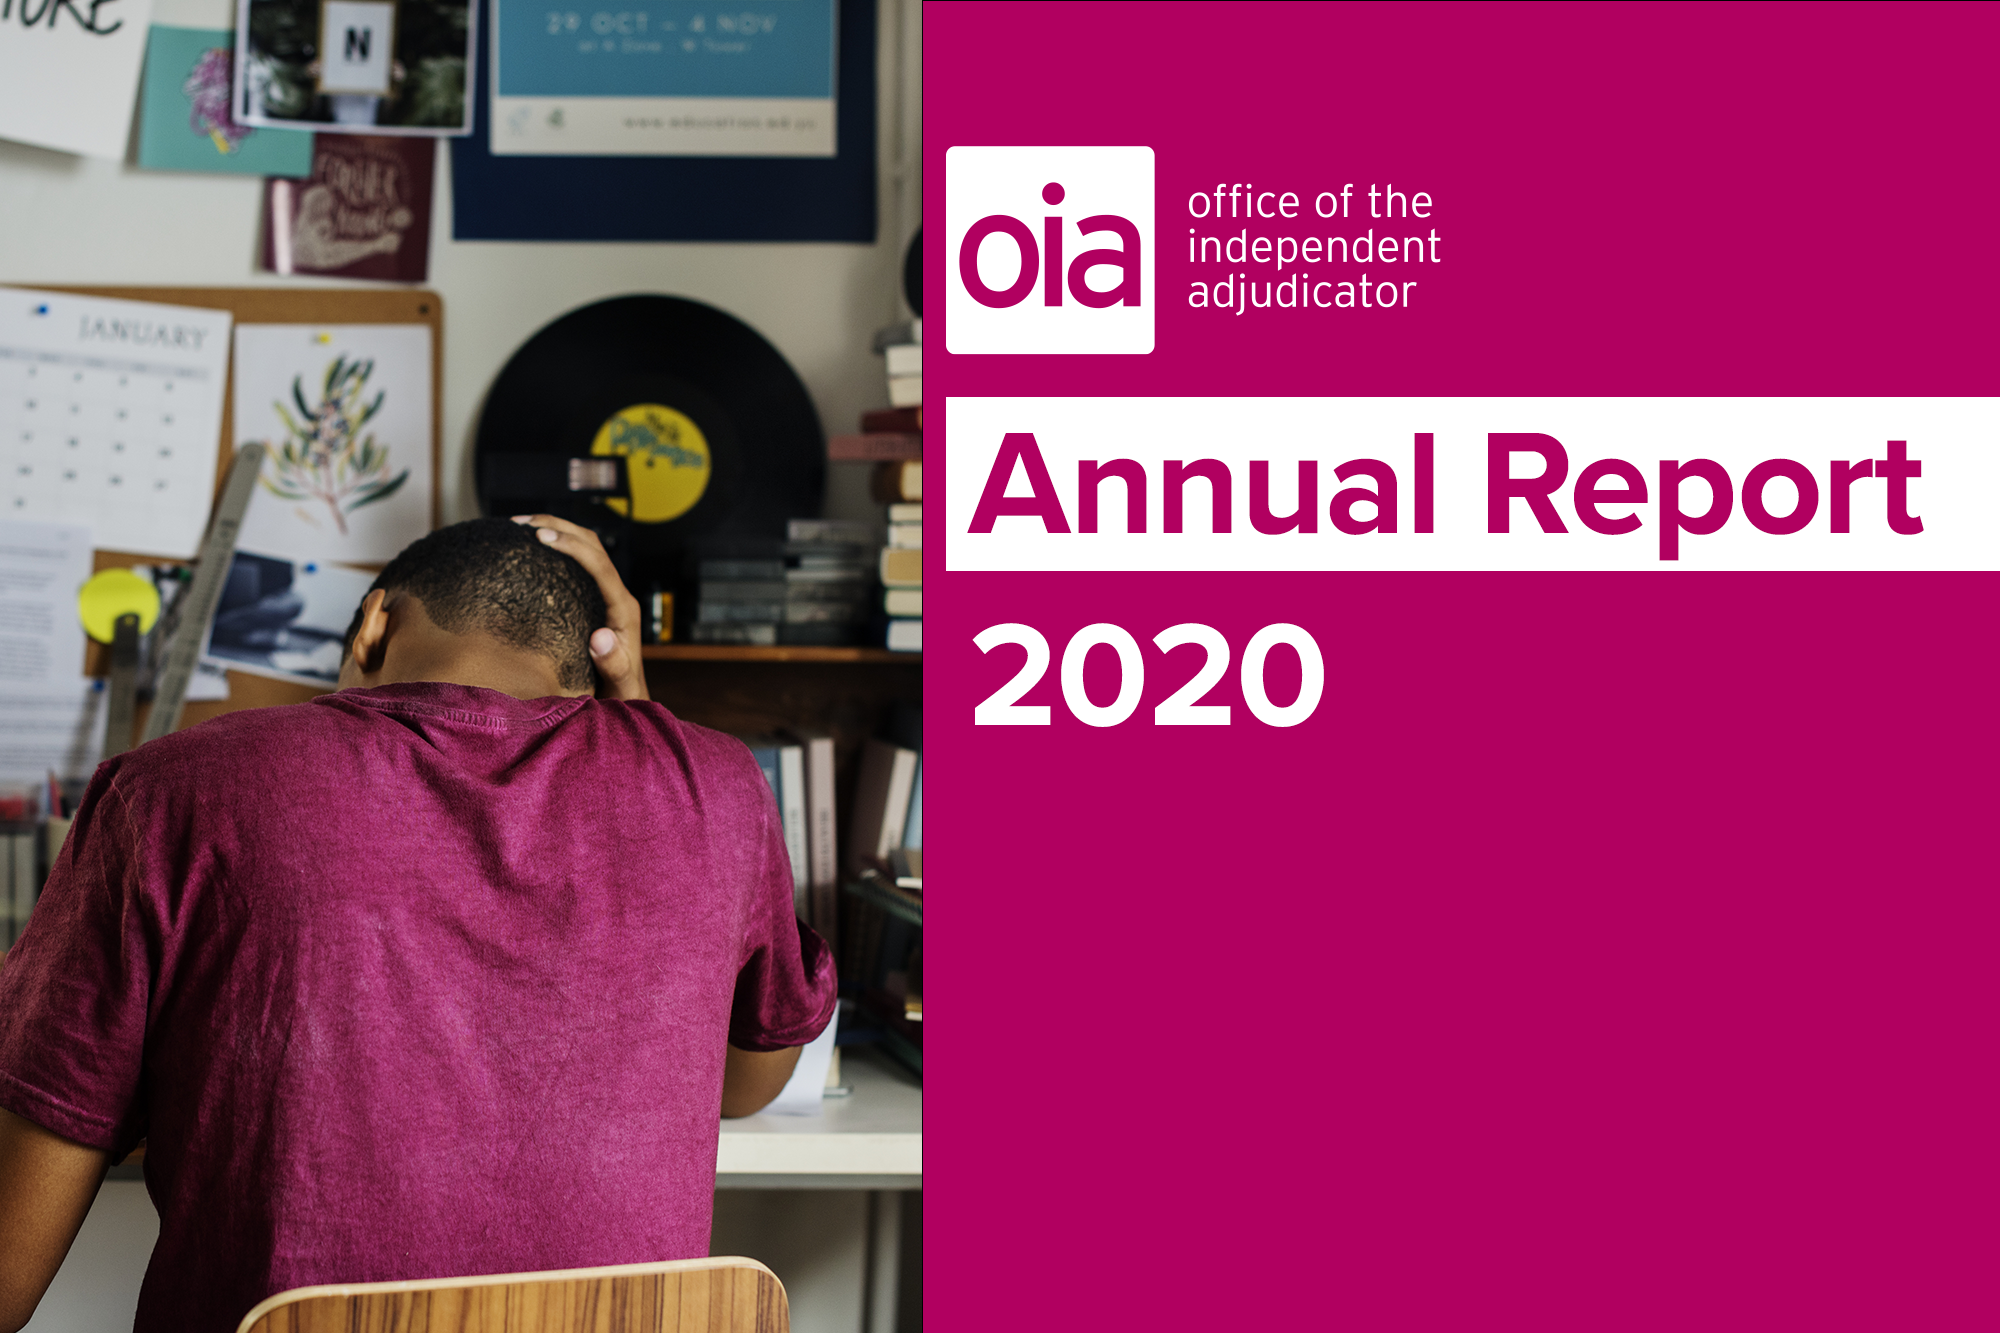 Annual Report 2020 image